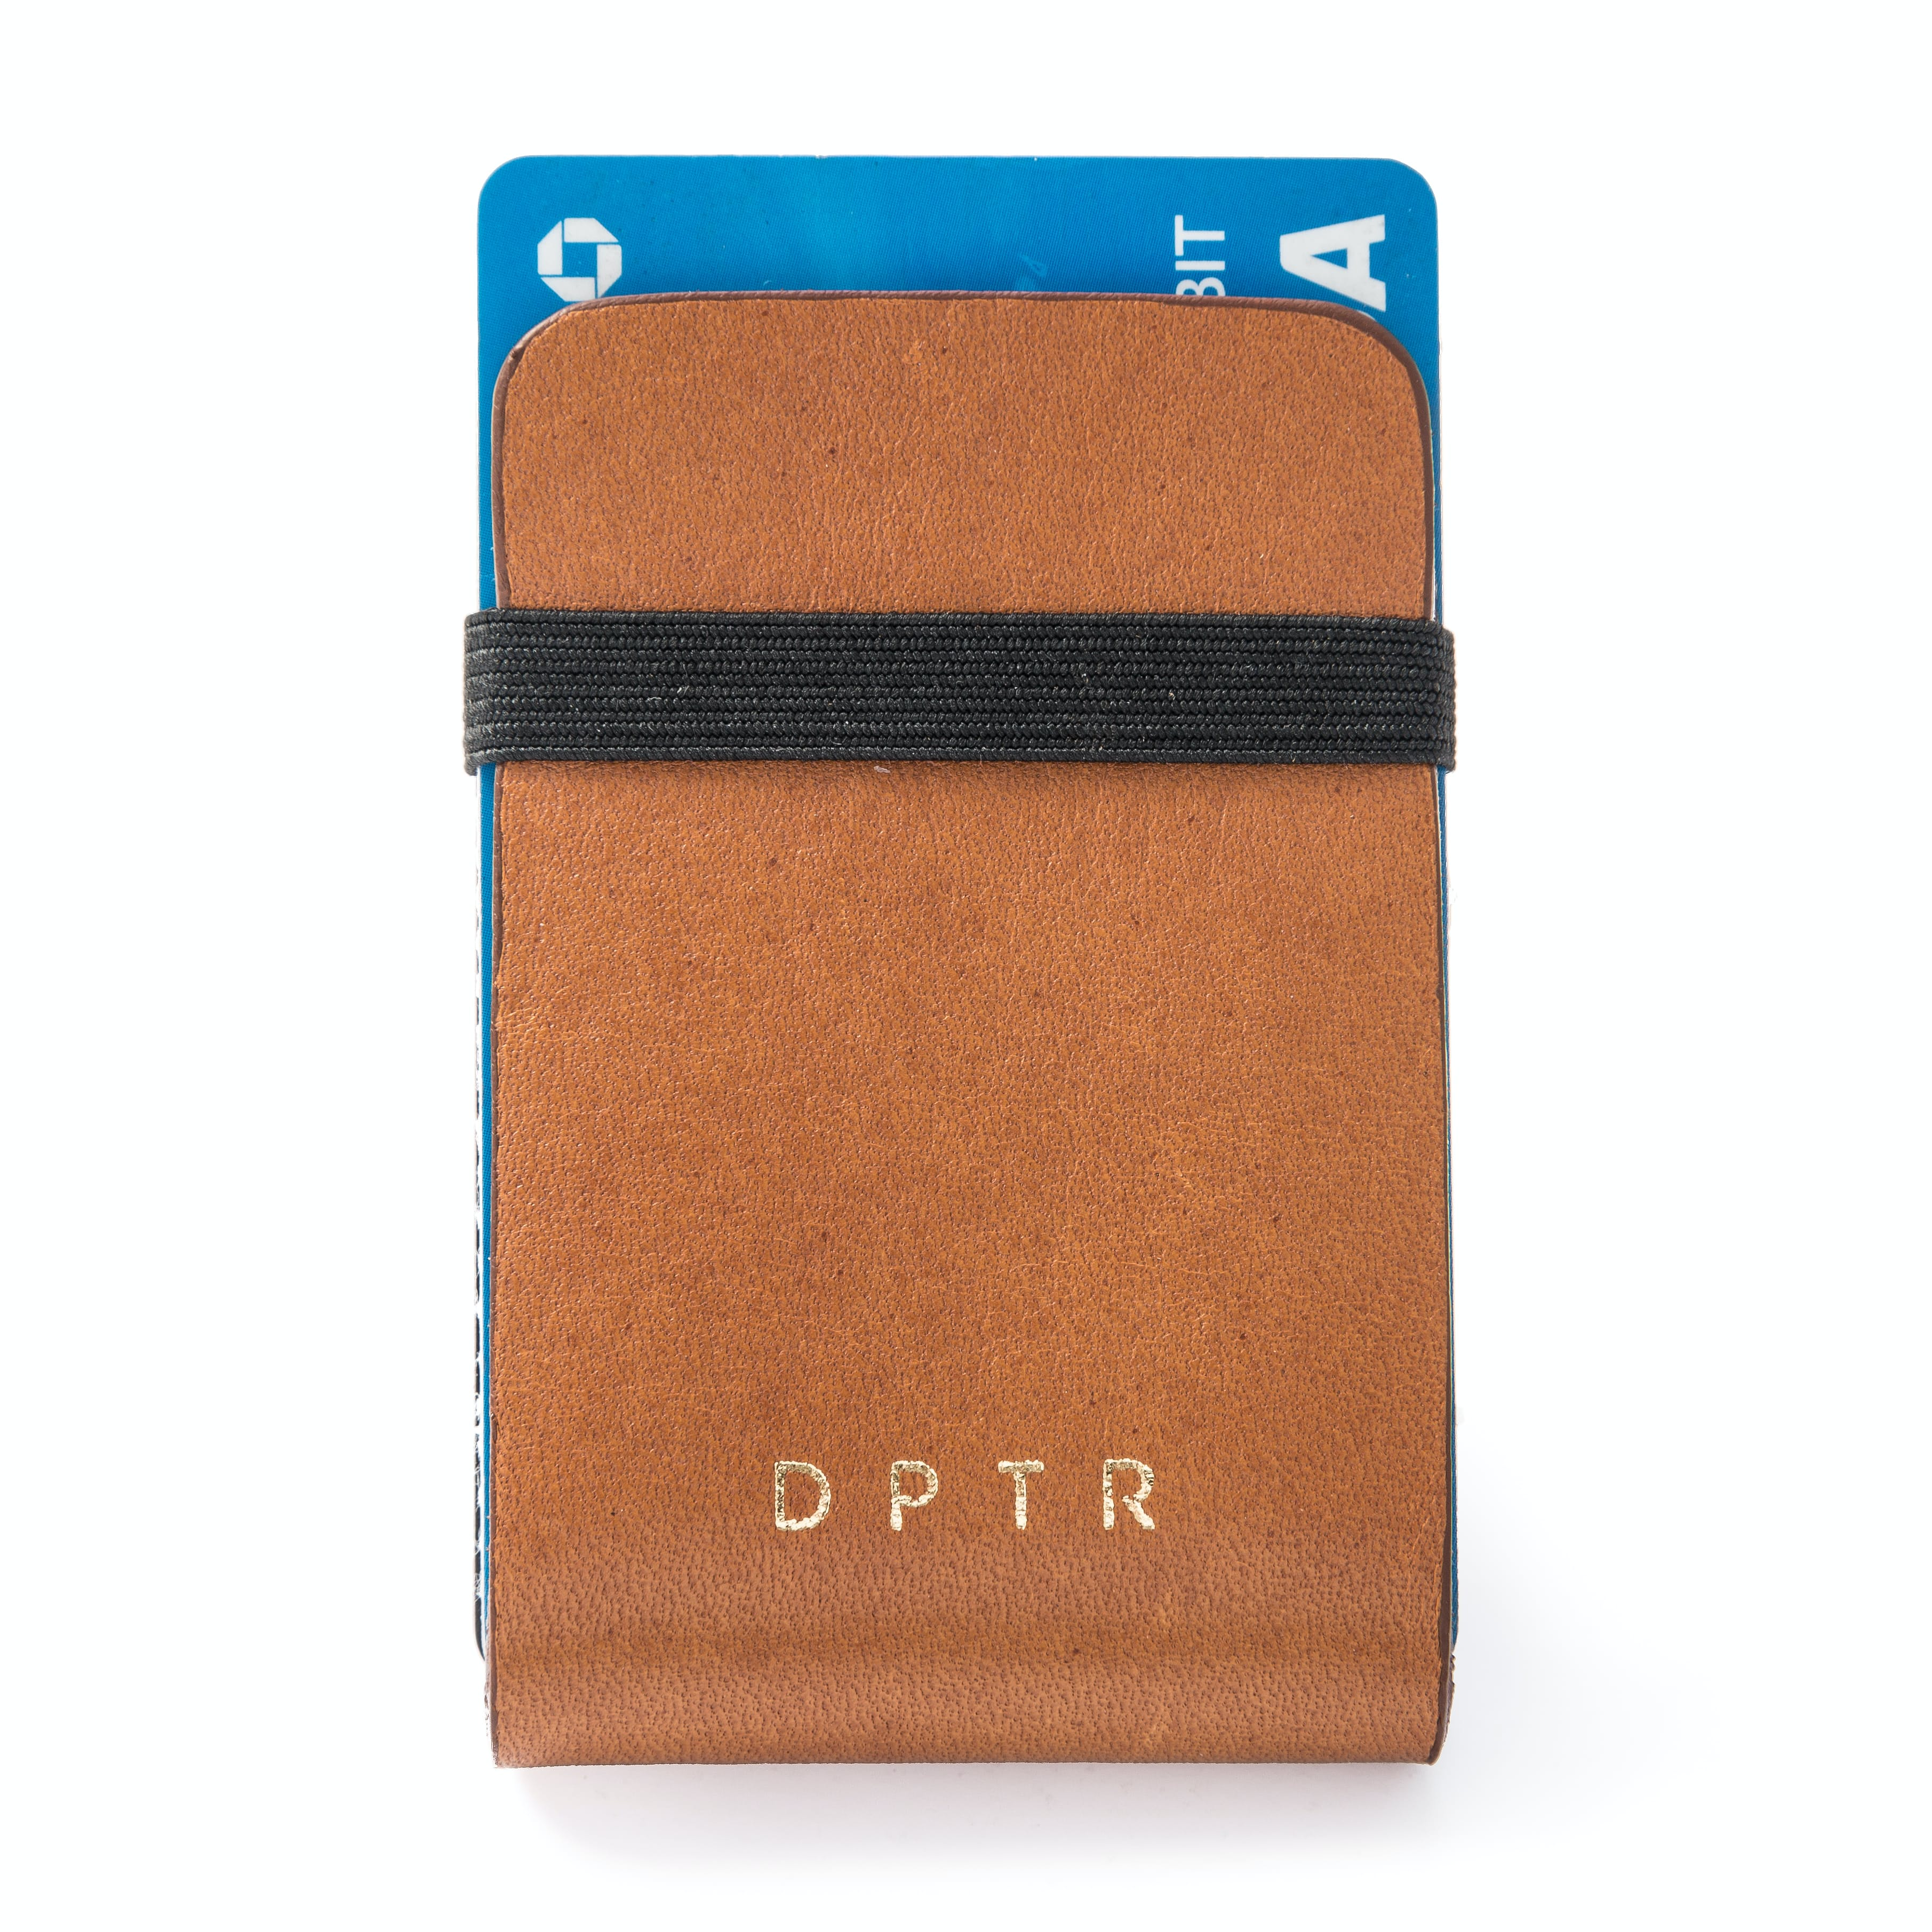 Iefpsny8yi dptr leather clamshell wallet 0 original